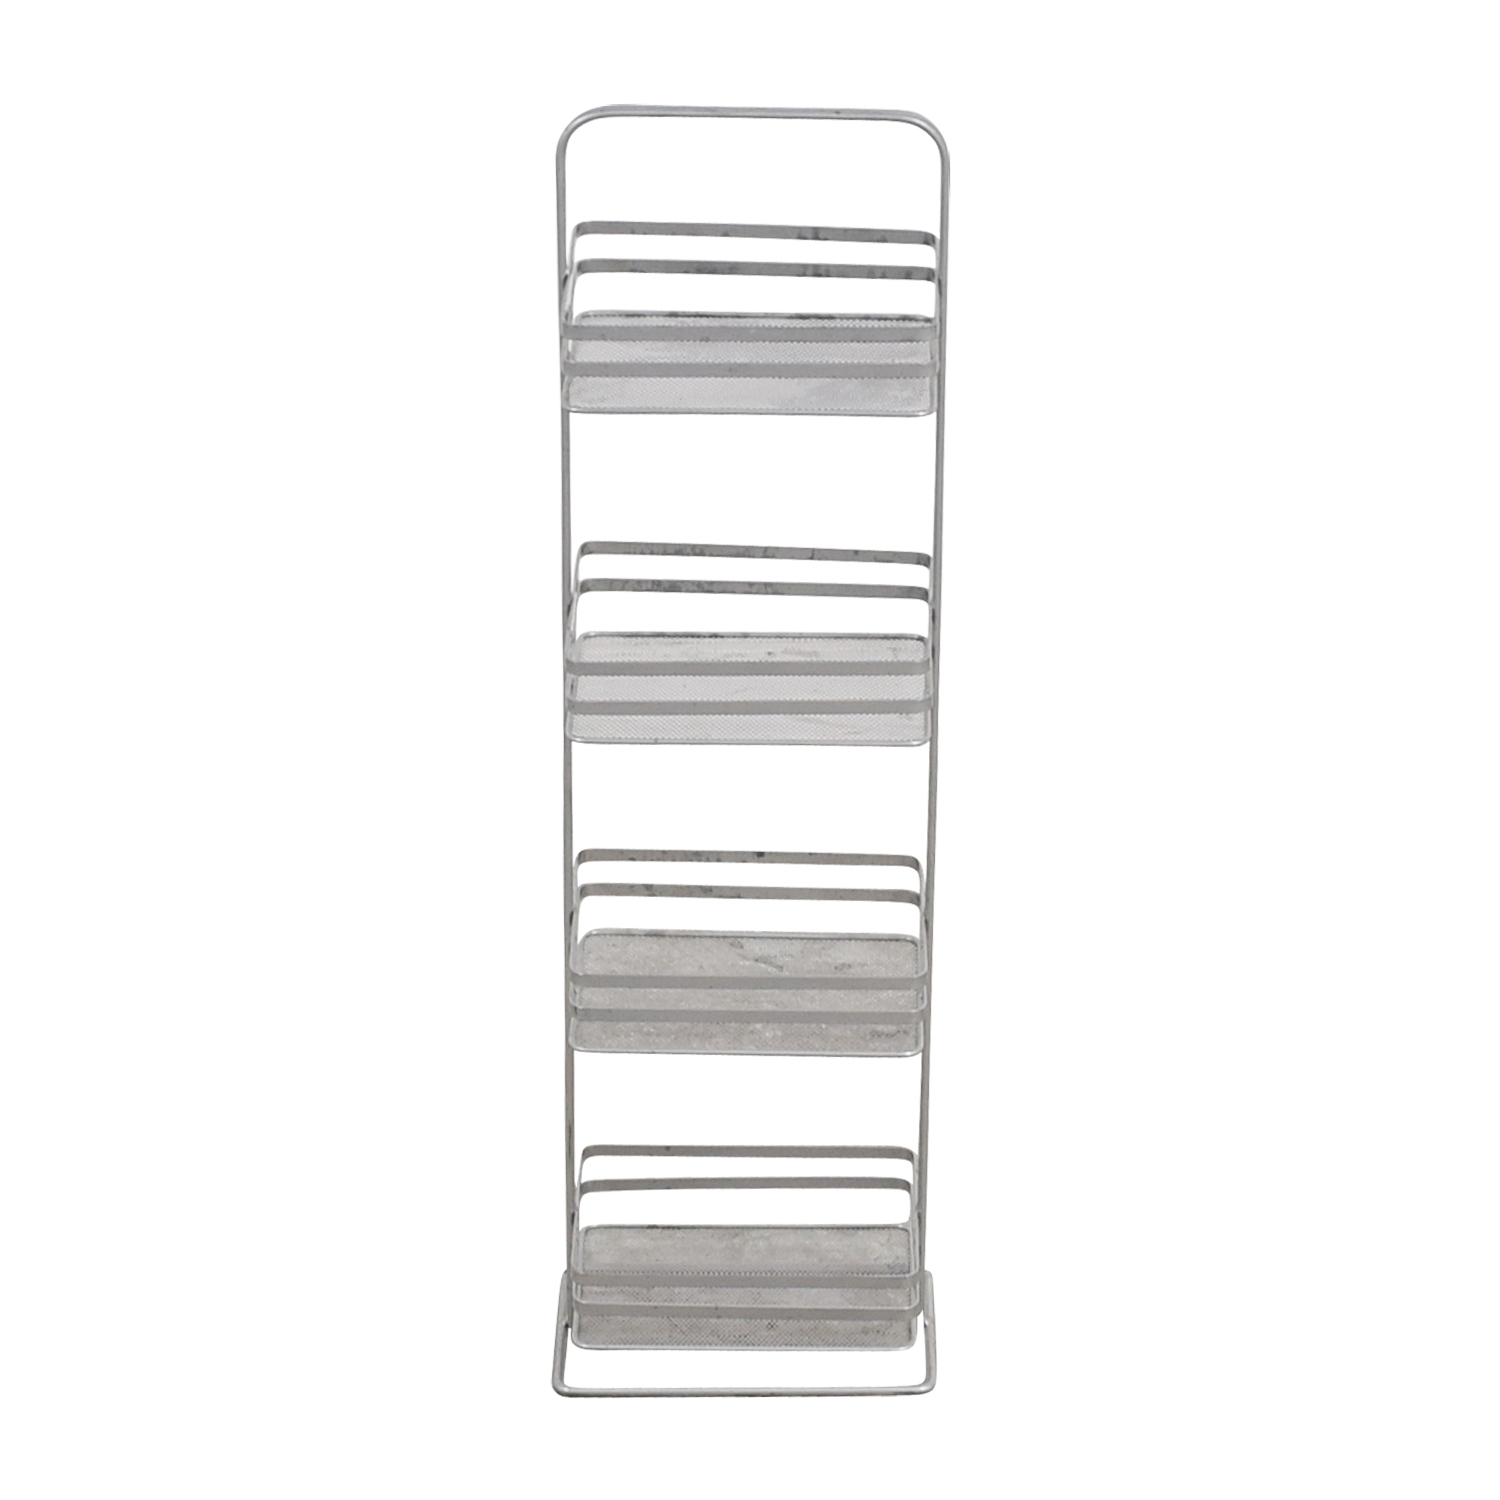 Grey Metal Rack dimensions